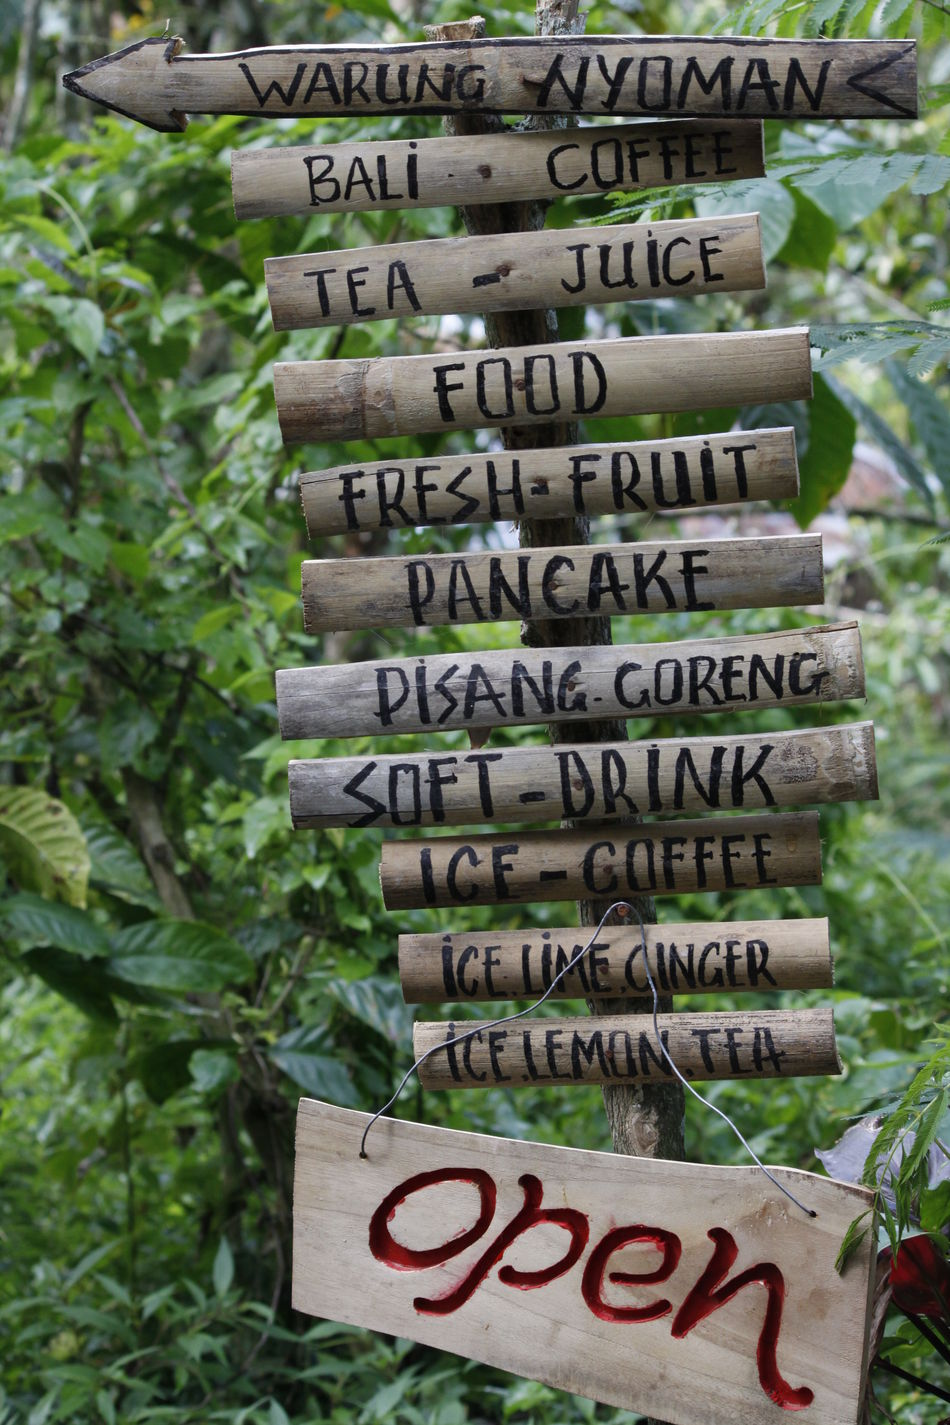 Click Click 📷📷📷 Close-up Eye For Detail Eye For Details Freshness Handmade Hello Bali Hello World INDONESIA Information Information Sign Message Non-western Script Outdoors Rainforest Read Signboard Taking Photos Text Throughmyeyes